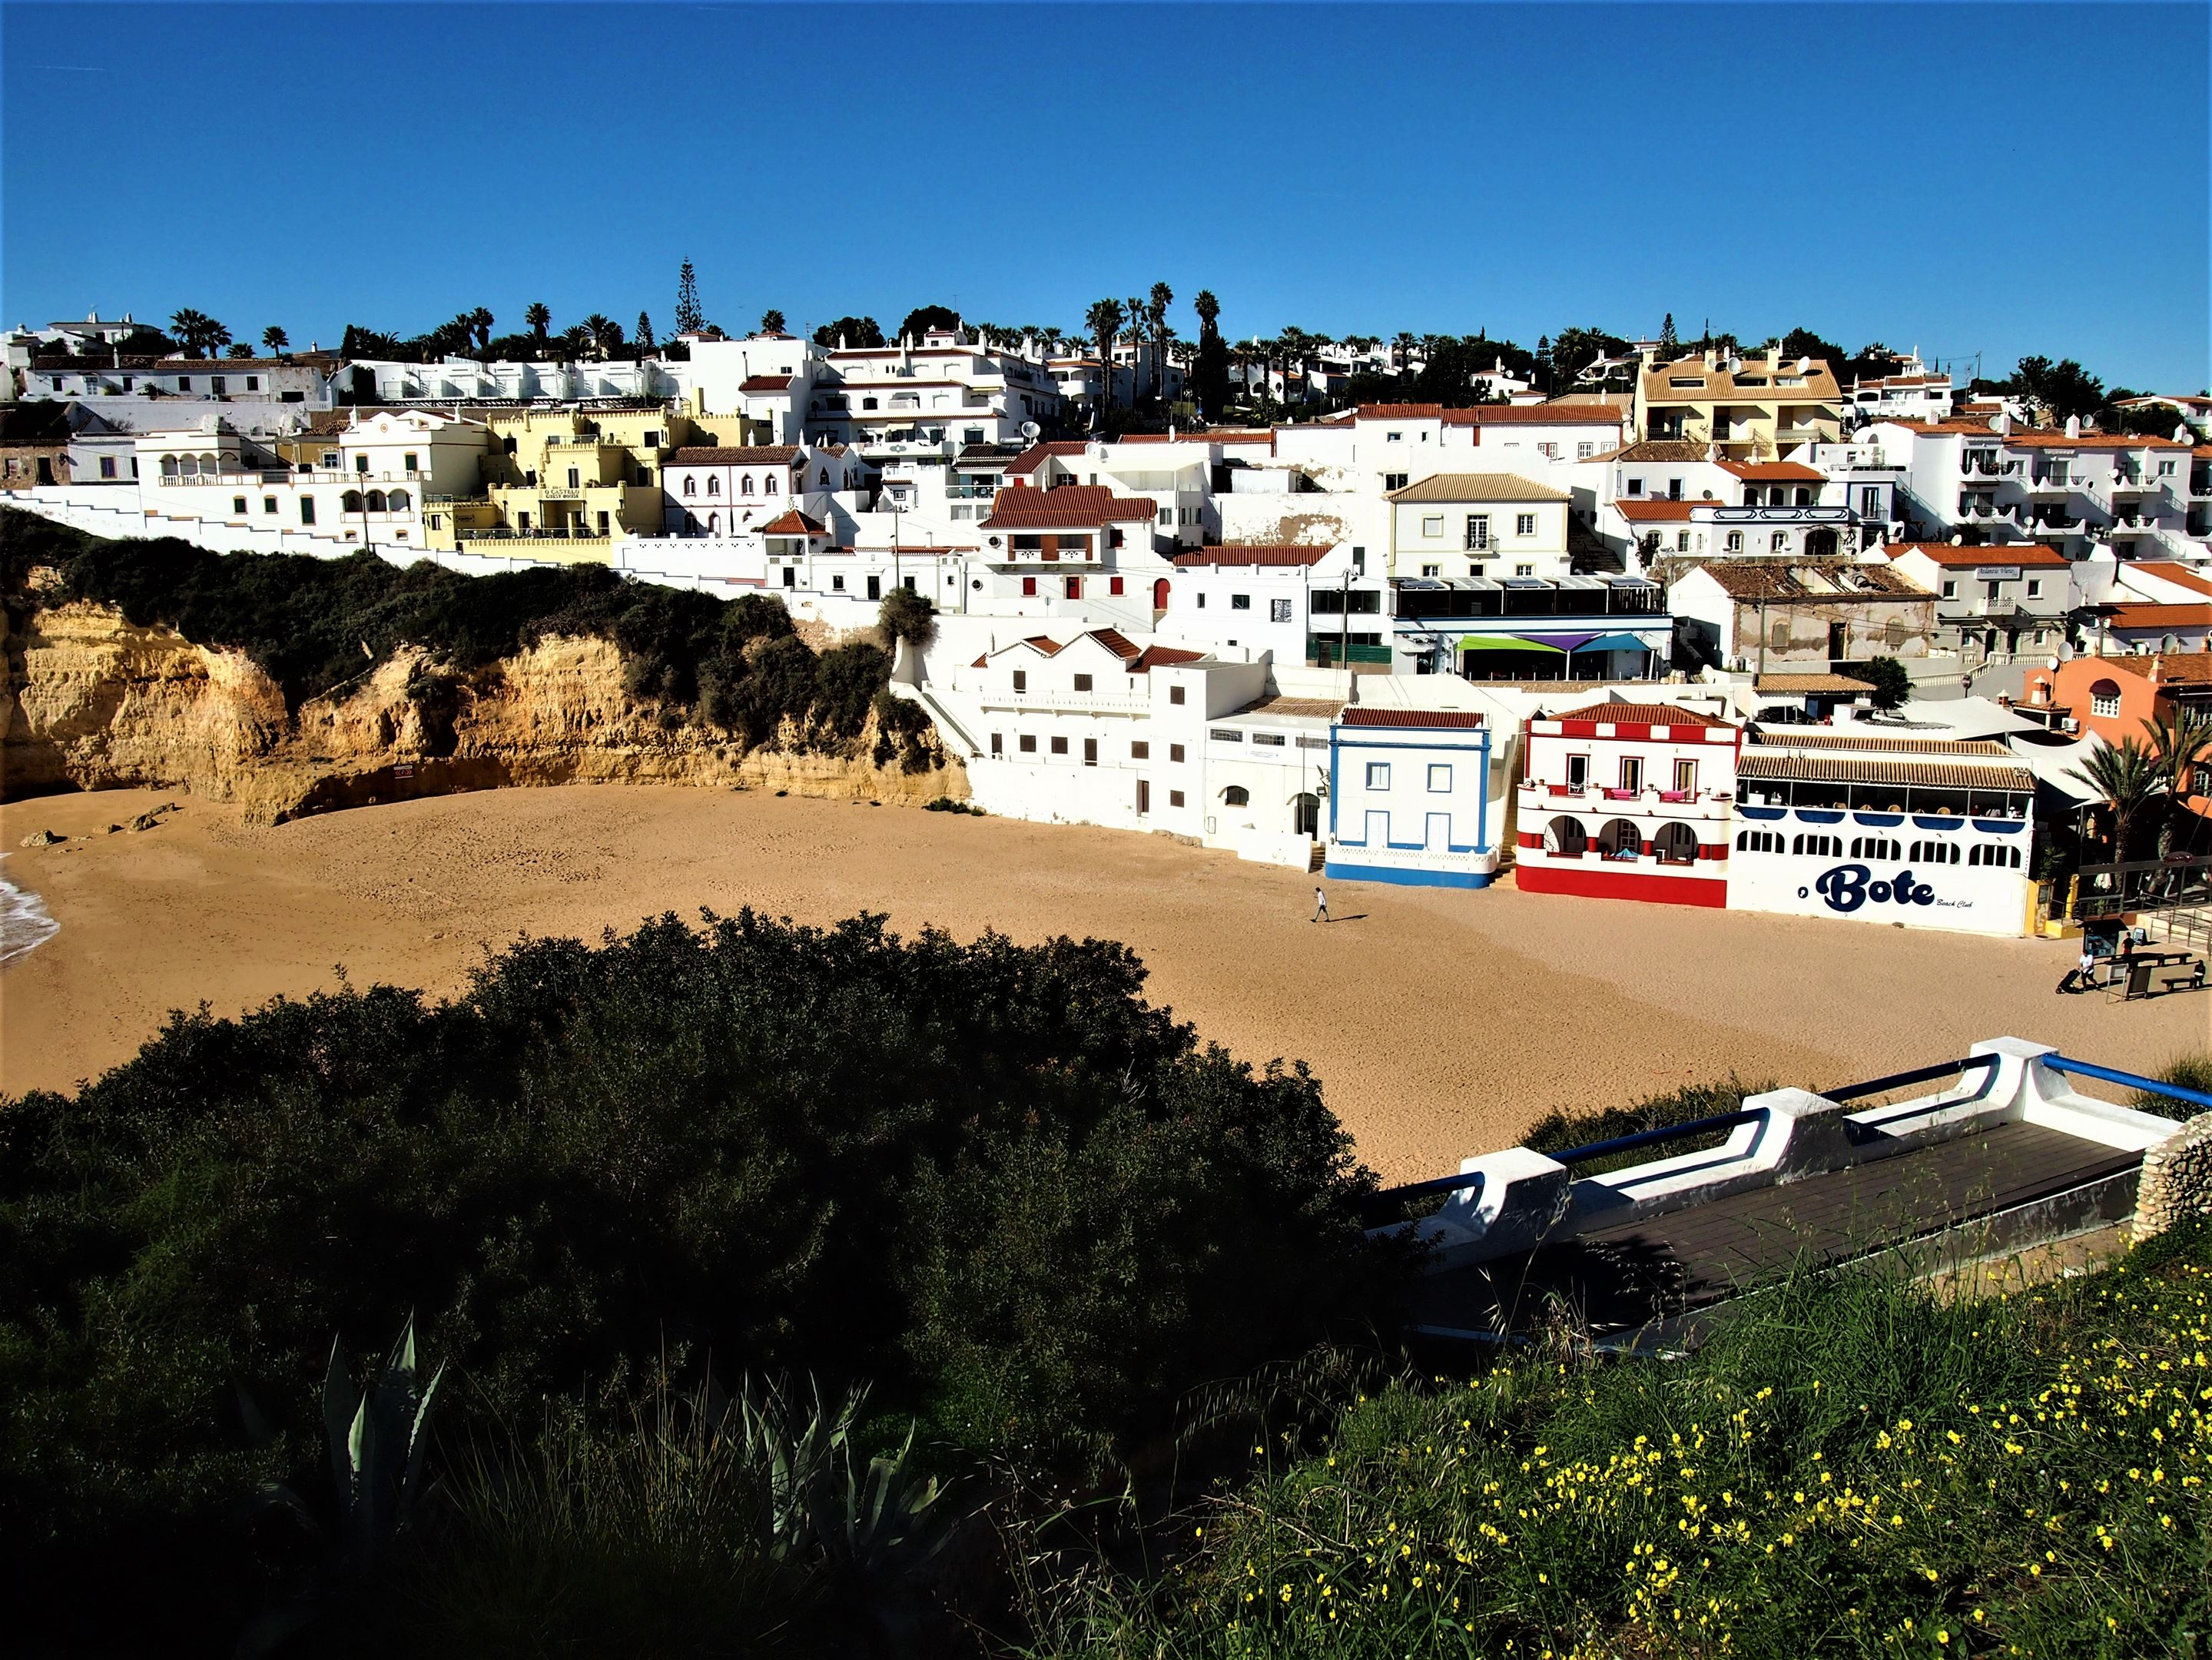 Praia do Carvoeiro with the town of Carvoeiro in the background